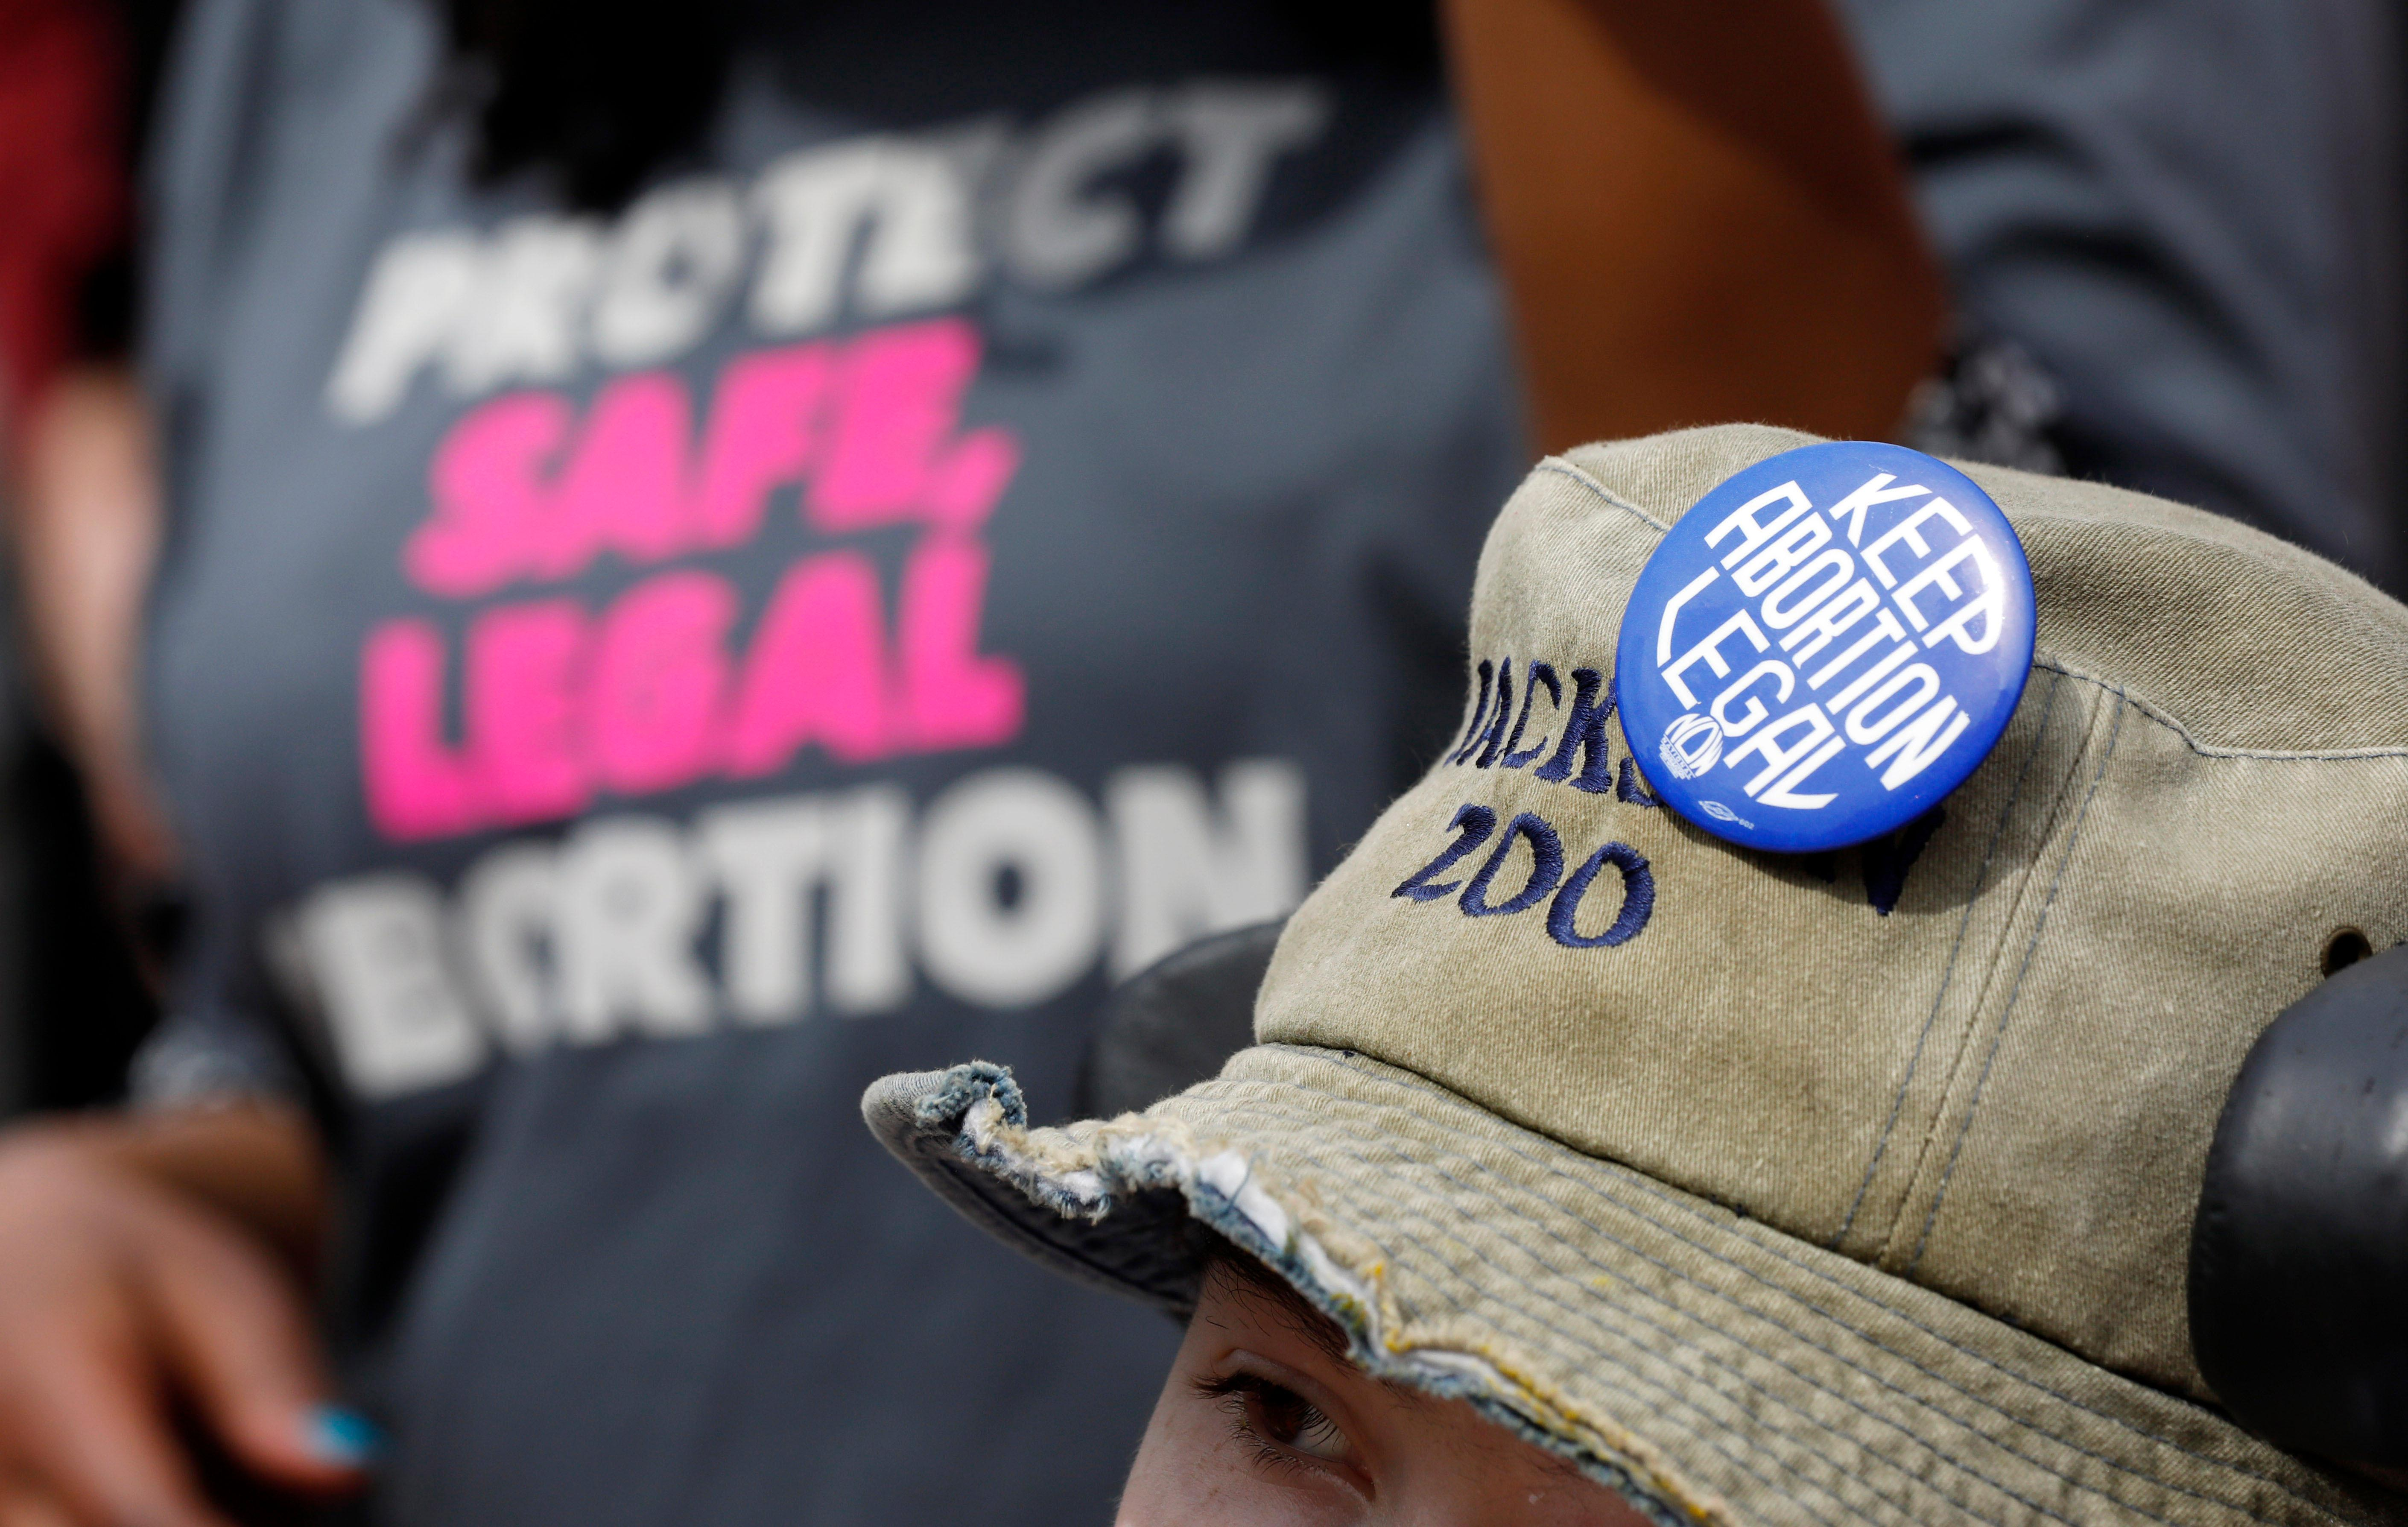 FILE -  In this March 14, 2019 file photograph, a Planned Parenthood supporter hosts an abortion rights button on her hat during a rally on the steps of the Capitol in Jackson, Miss. On Tuesday, March 19.. (AP Photo/Rogelio V. Solis, File)